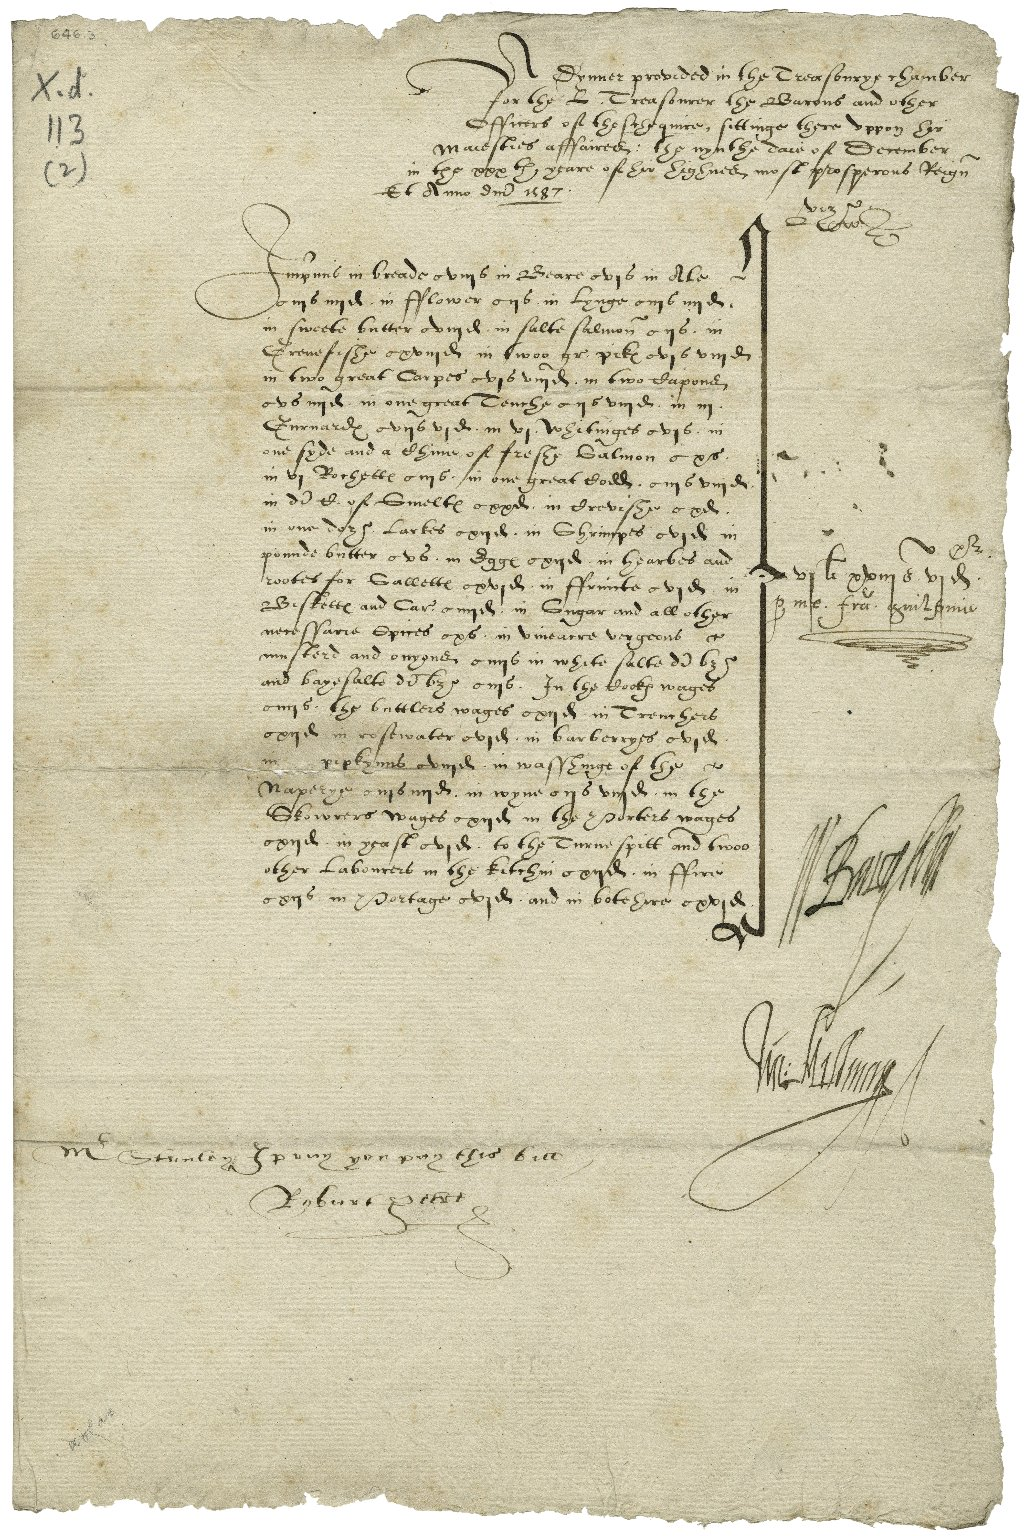 2 papers - expenses of the diet provided, for 2 dinners [manuscript], June 30, 1586 and December 9, 1587.